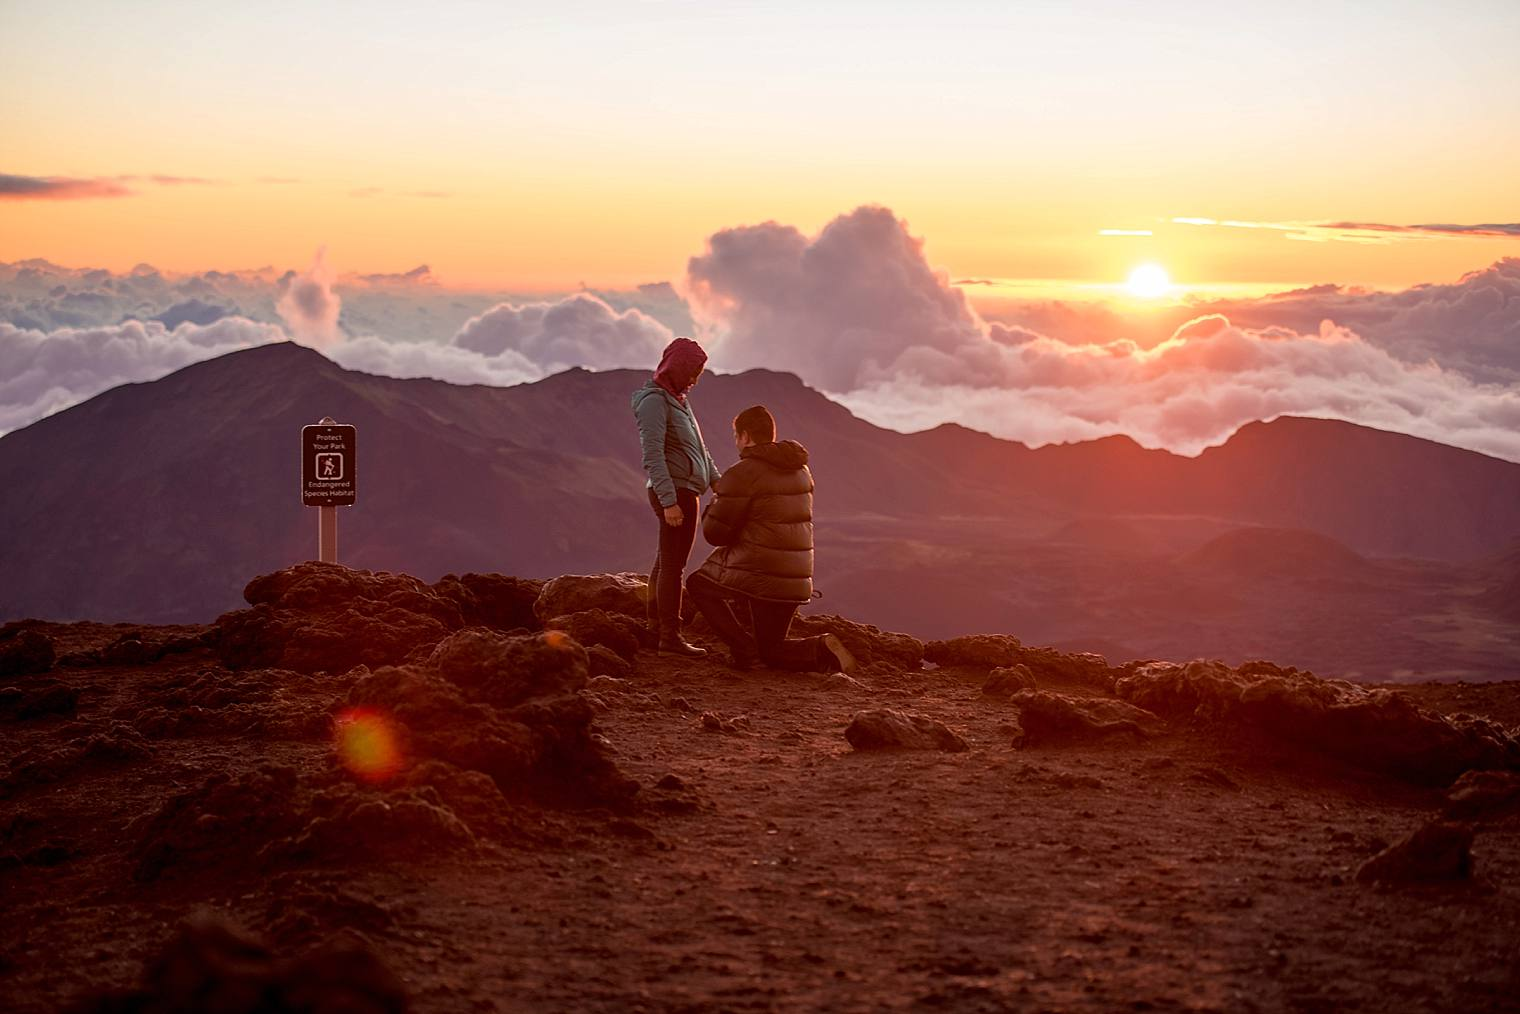 sunrise proposal on top of Haleakala